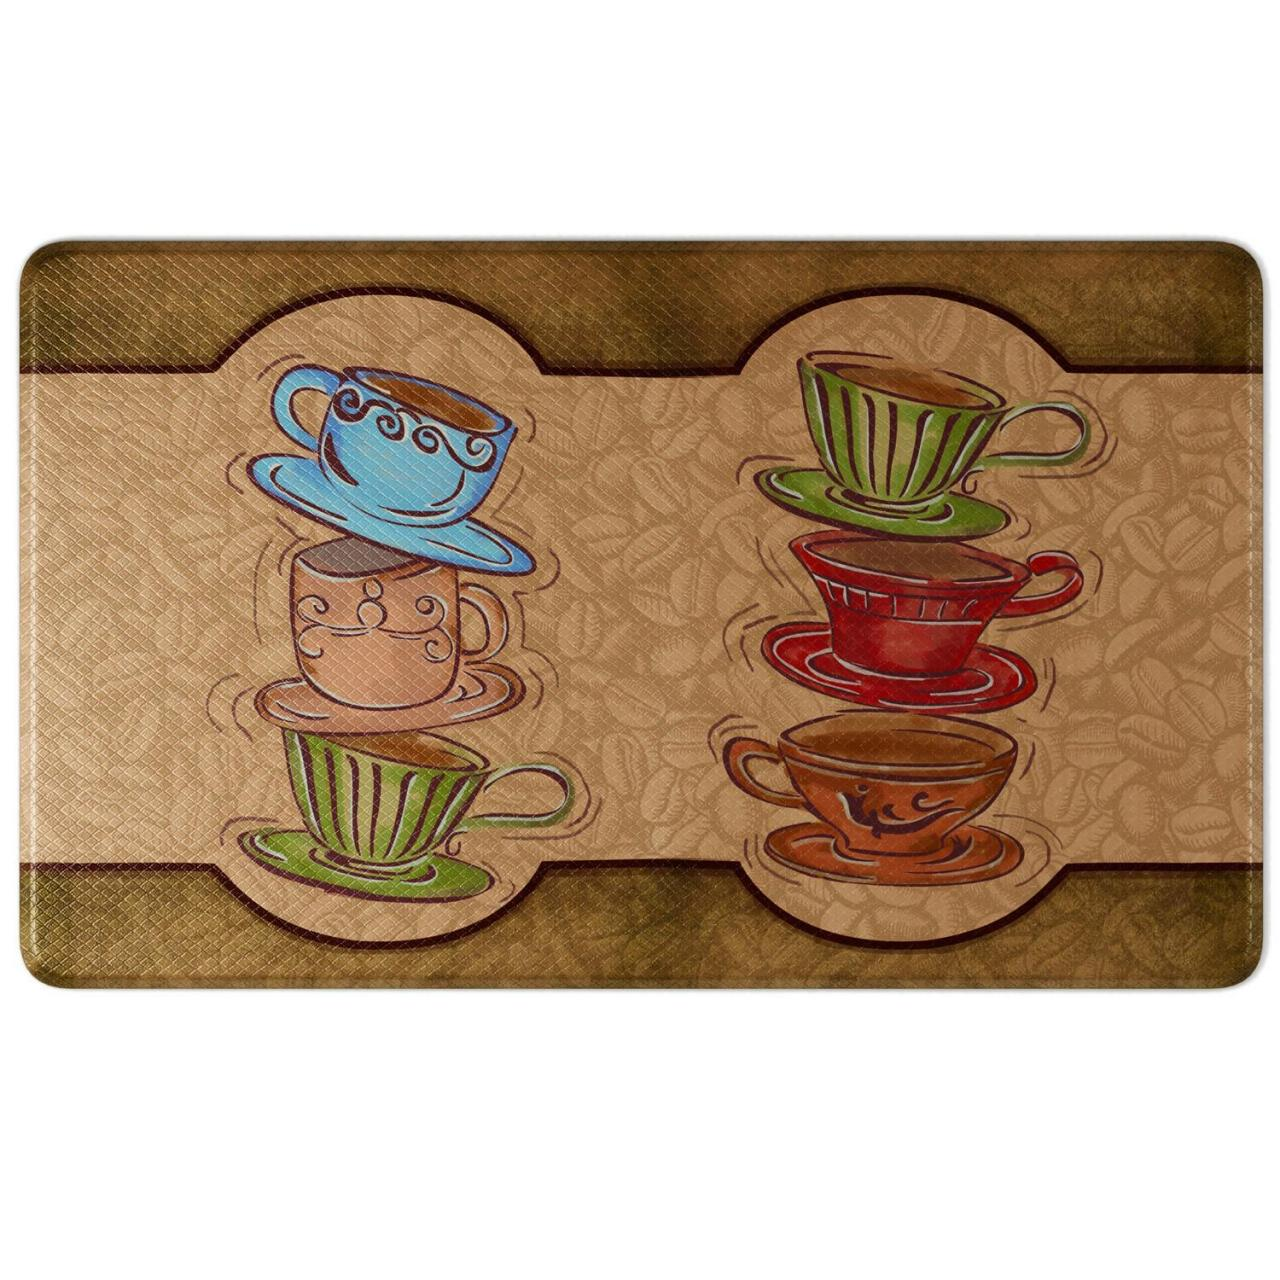 Buy cheap Y10007 - Anti-Fatigue Comfort Kitchen Mat, Coffee Cup Party Style 18 X 30 from wholesalers